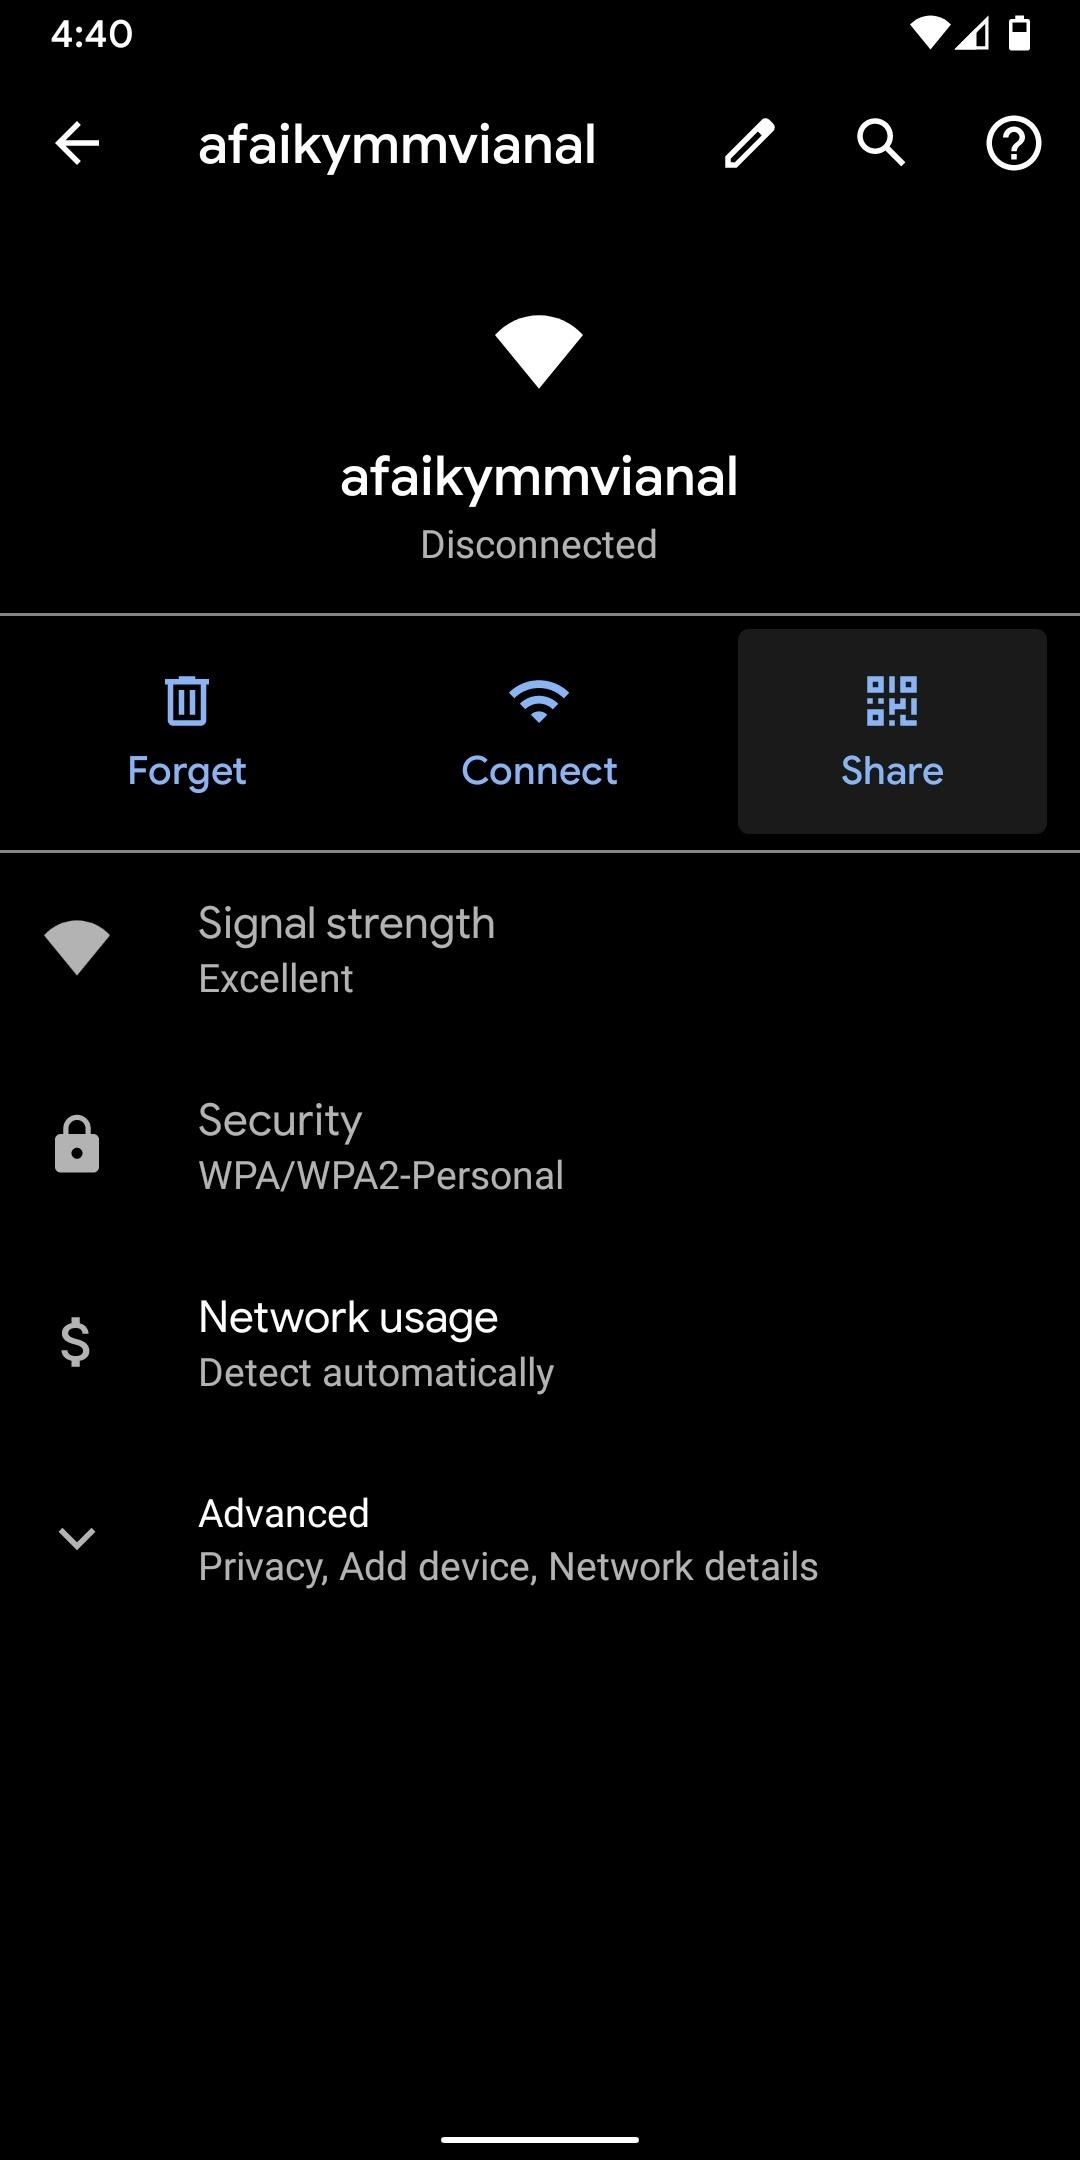 How to See Passwords for Wi-Fi Networks You've Connected Your